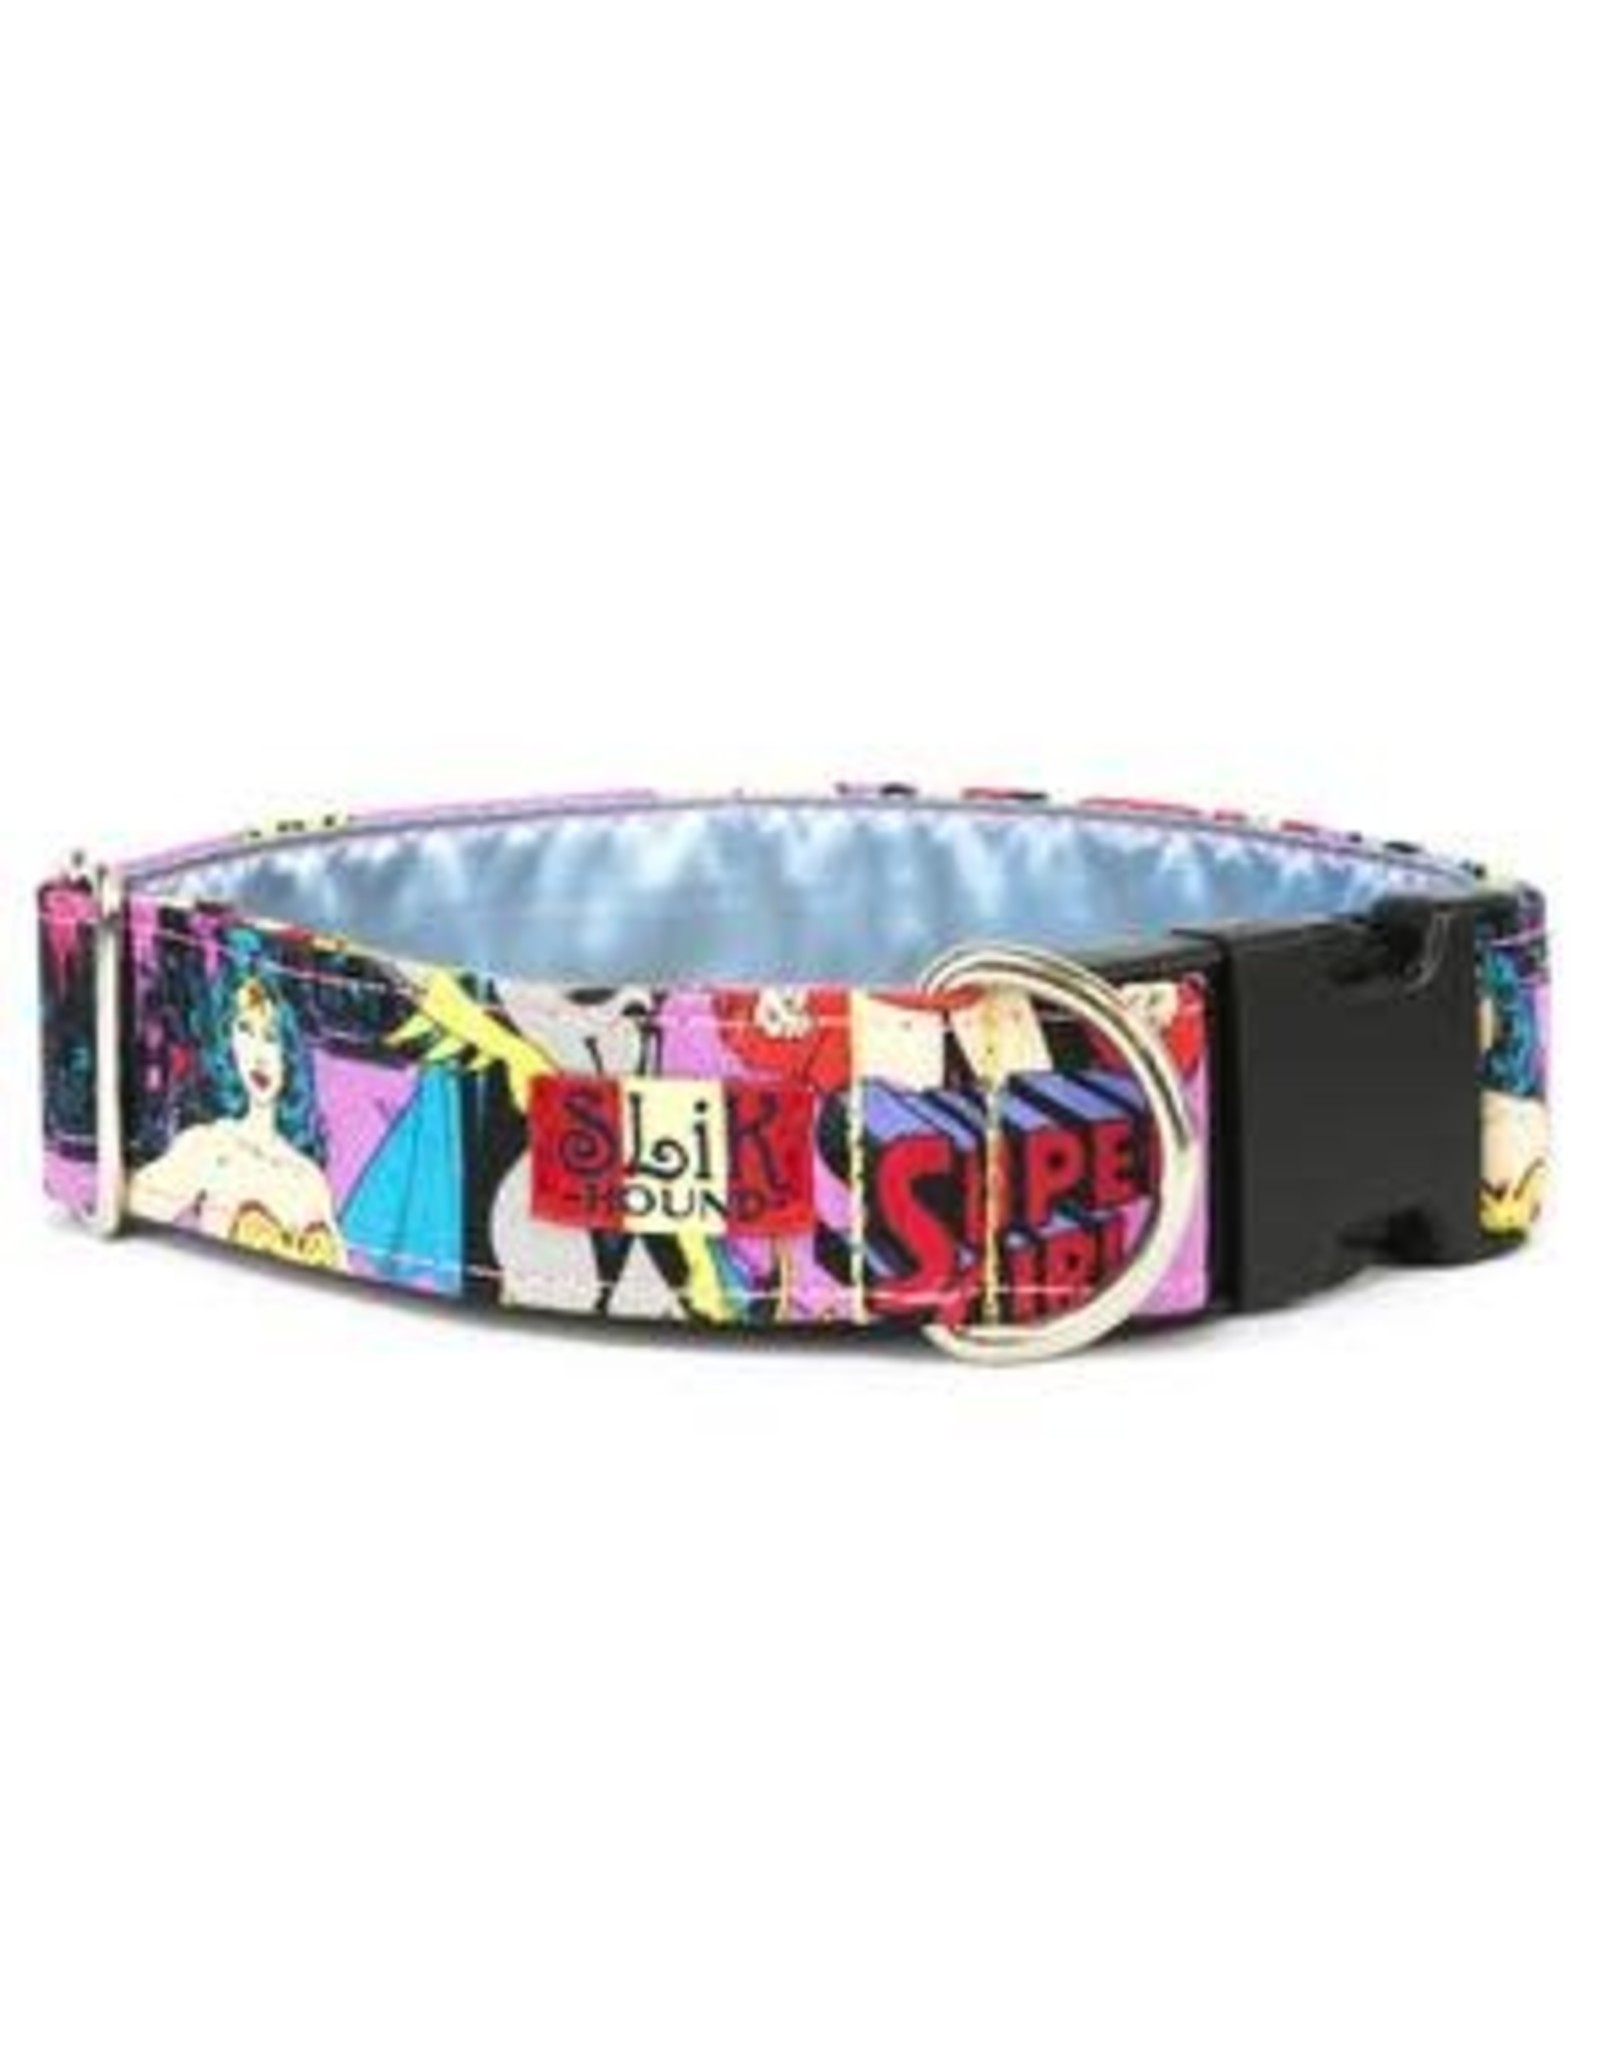 SLIK HOUND SLIK HOUND COLLAR WONDER WOMAN 6-10IN .5W